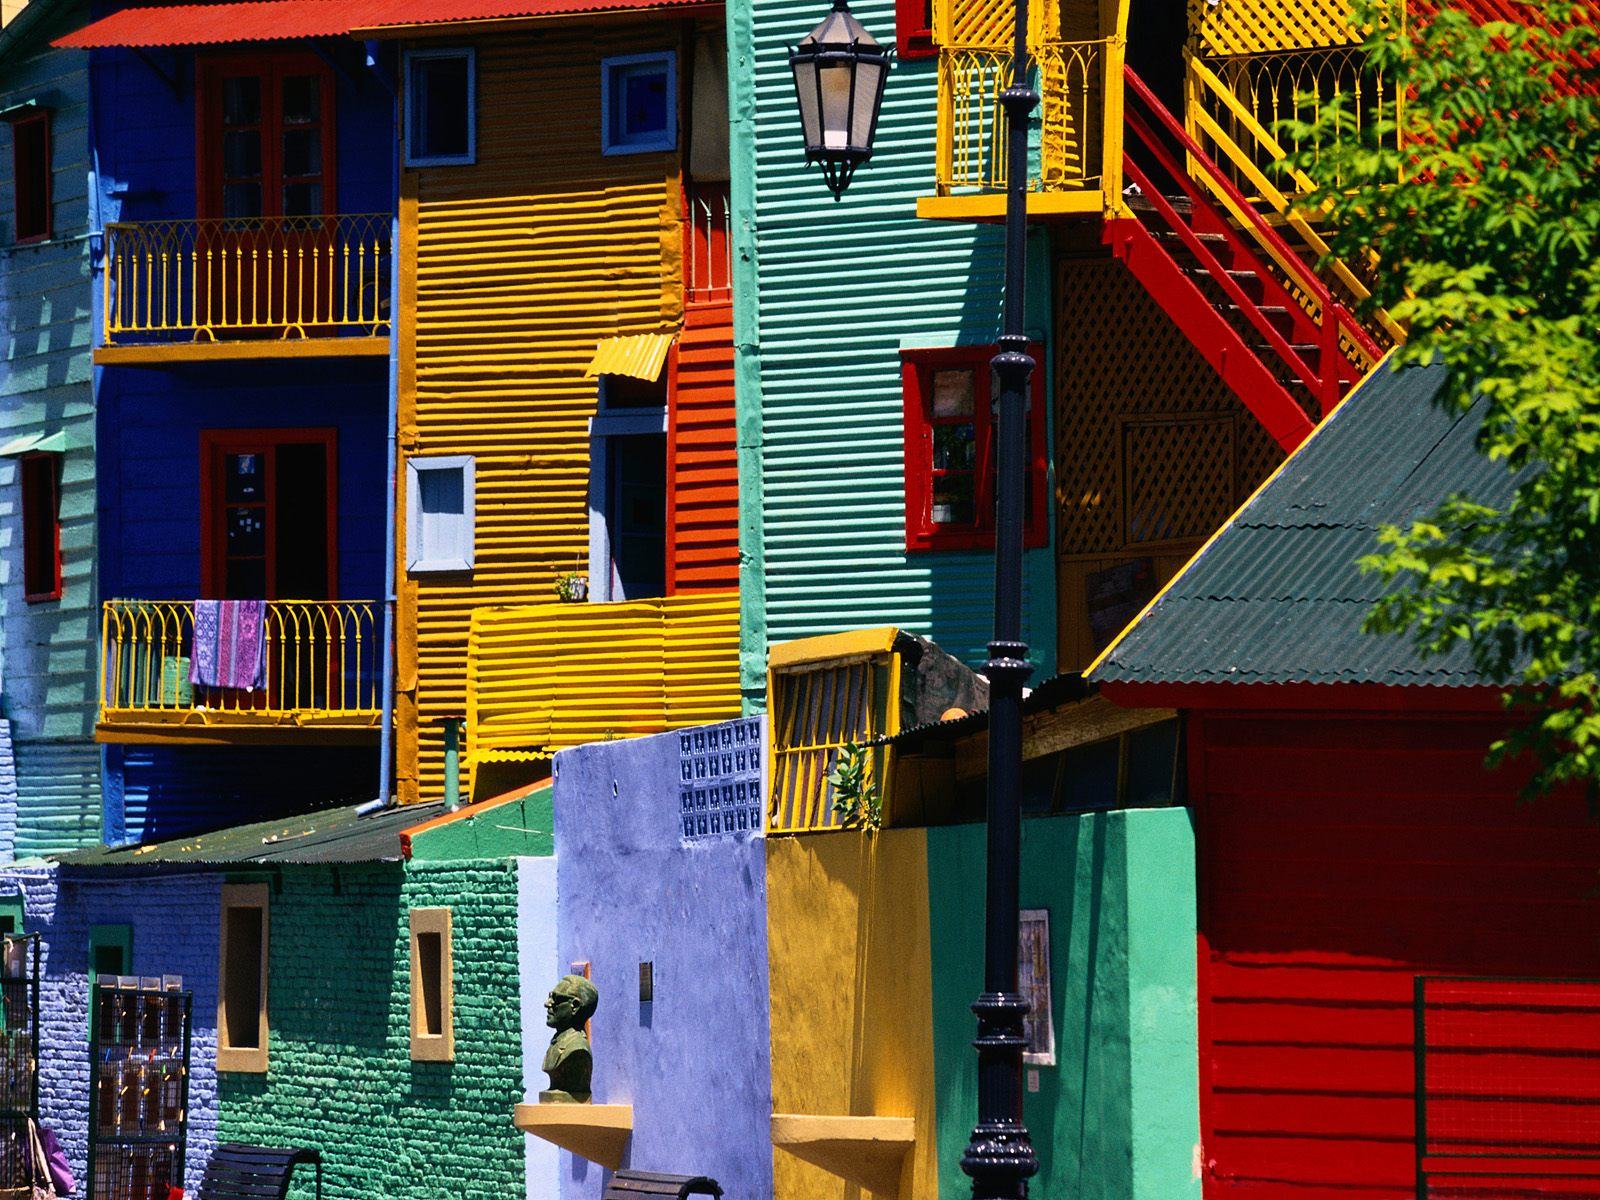 colorful_houses_buenos_aires_argentina_wallpaper-normal